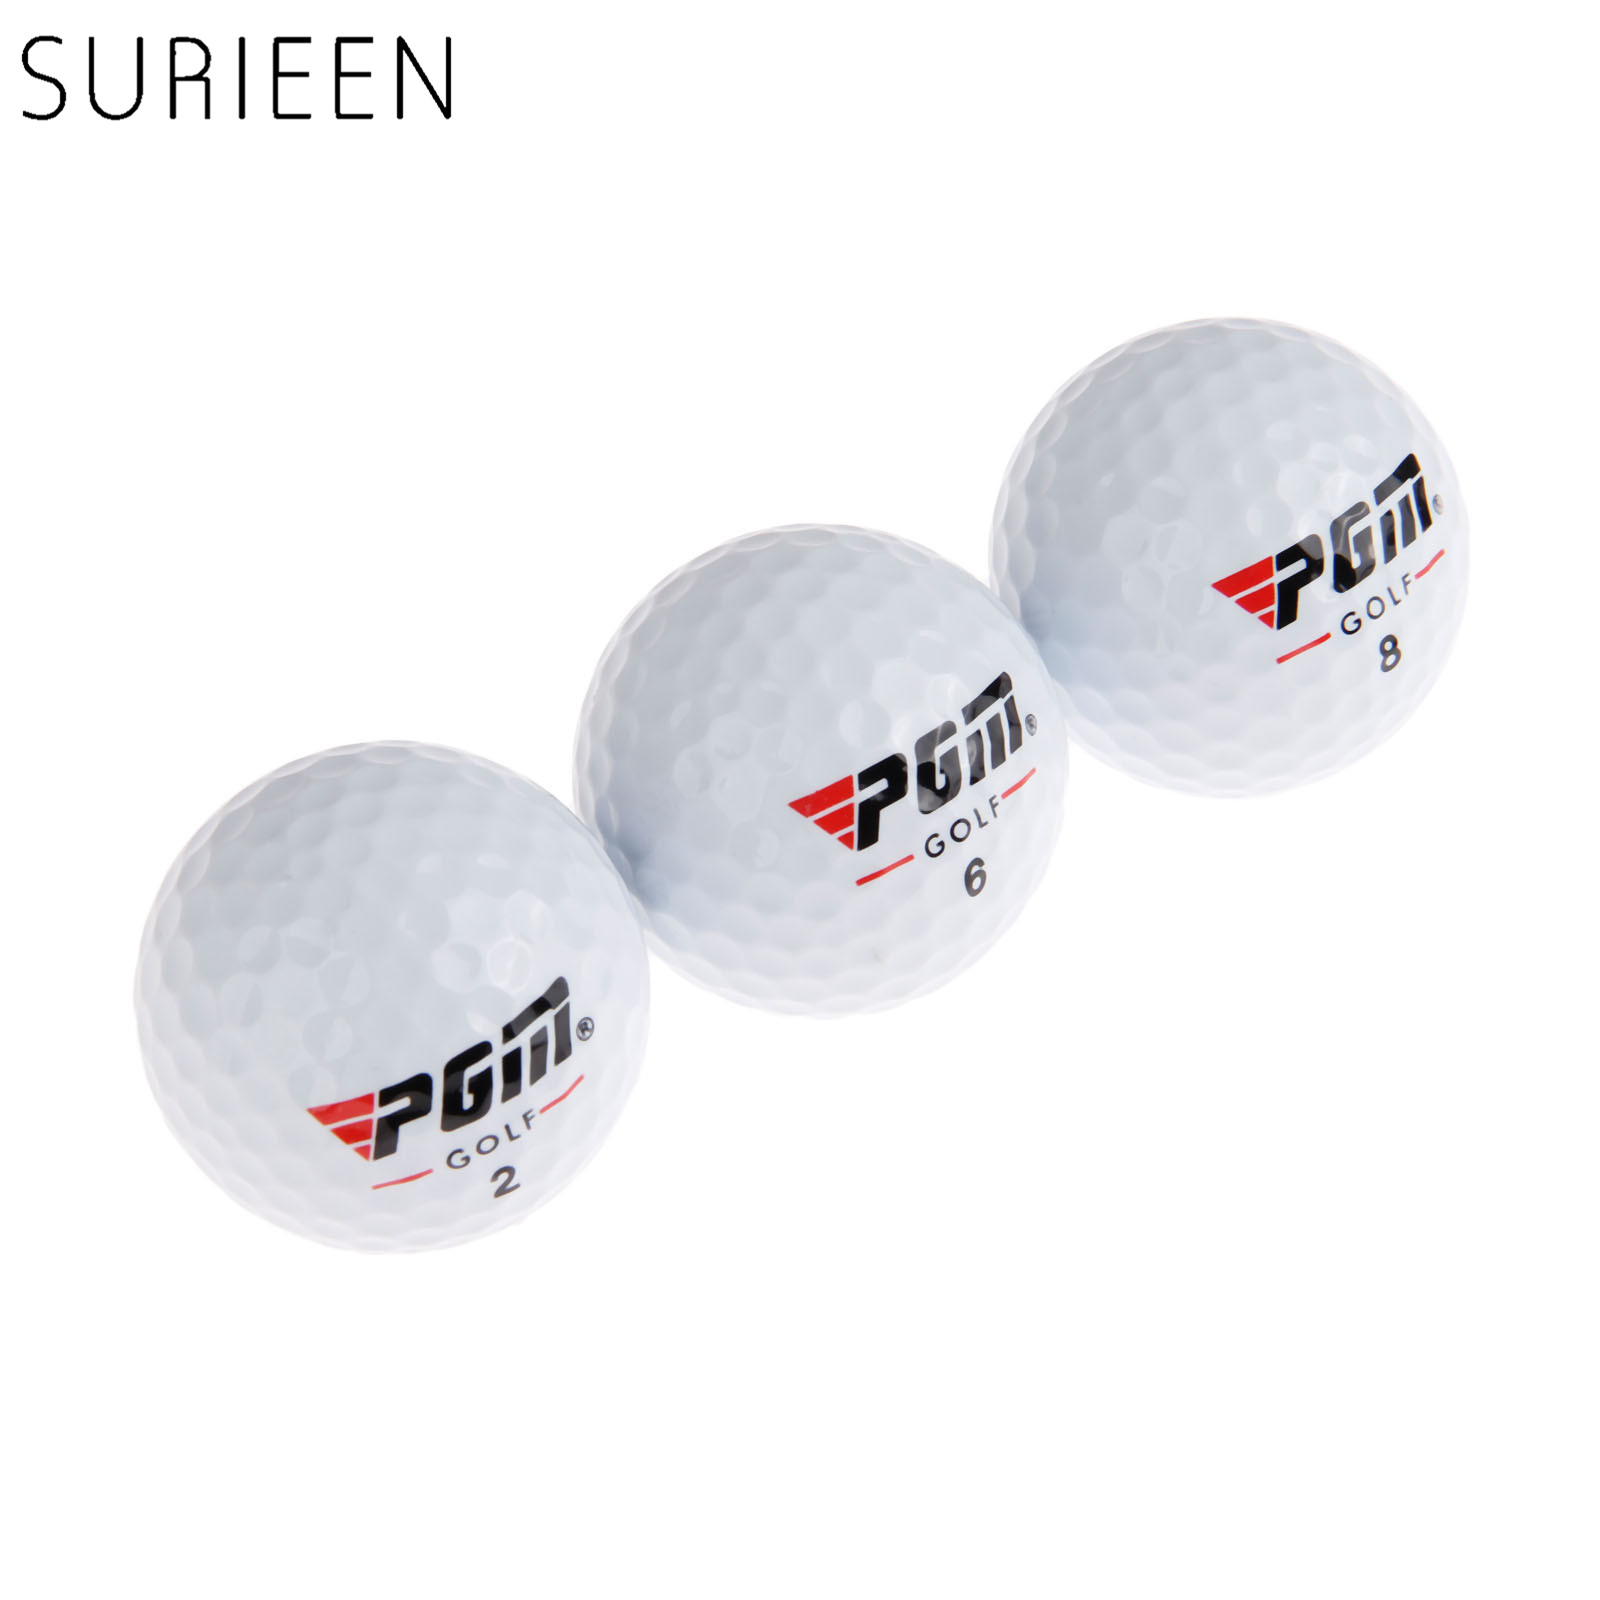 SURIEEN White 3pcs Golf Competition Balls 3 Layers High Quality Game Balls 42.6mm Diameter Synthetic Rubber Golf Training Balls